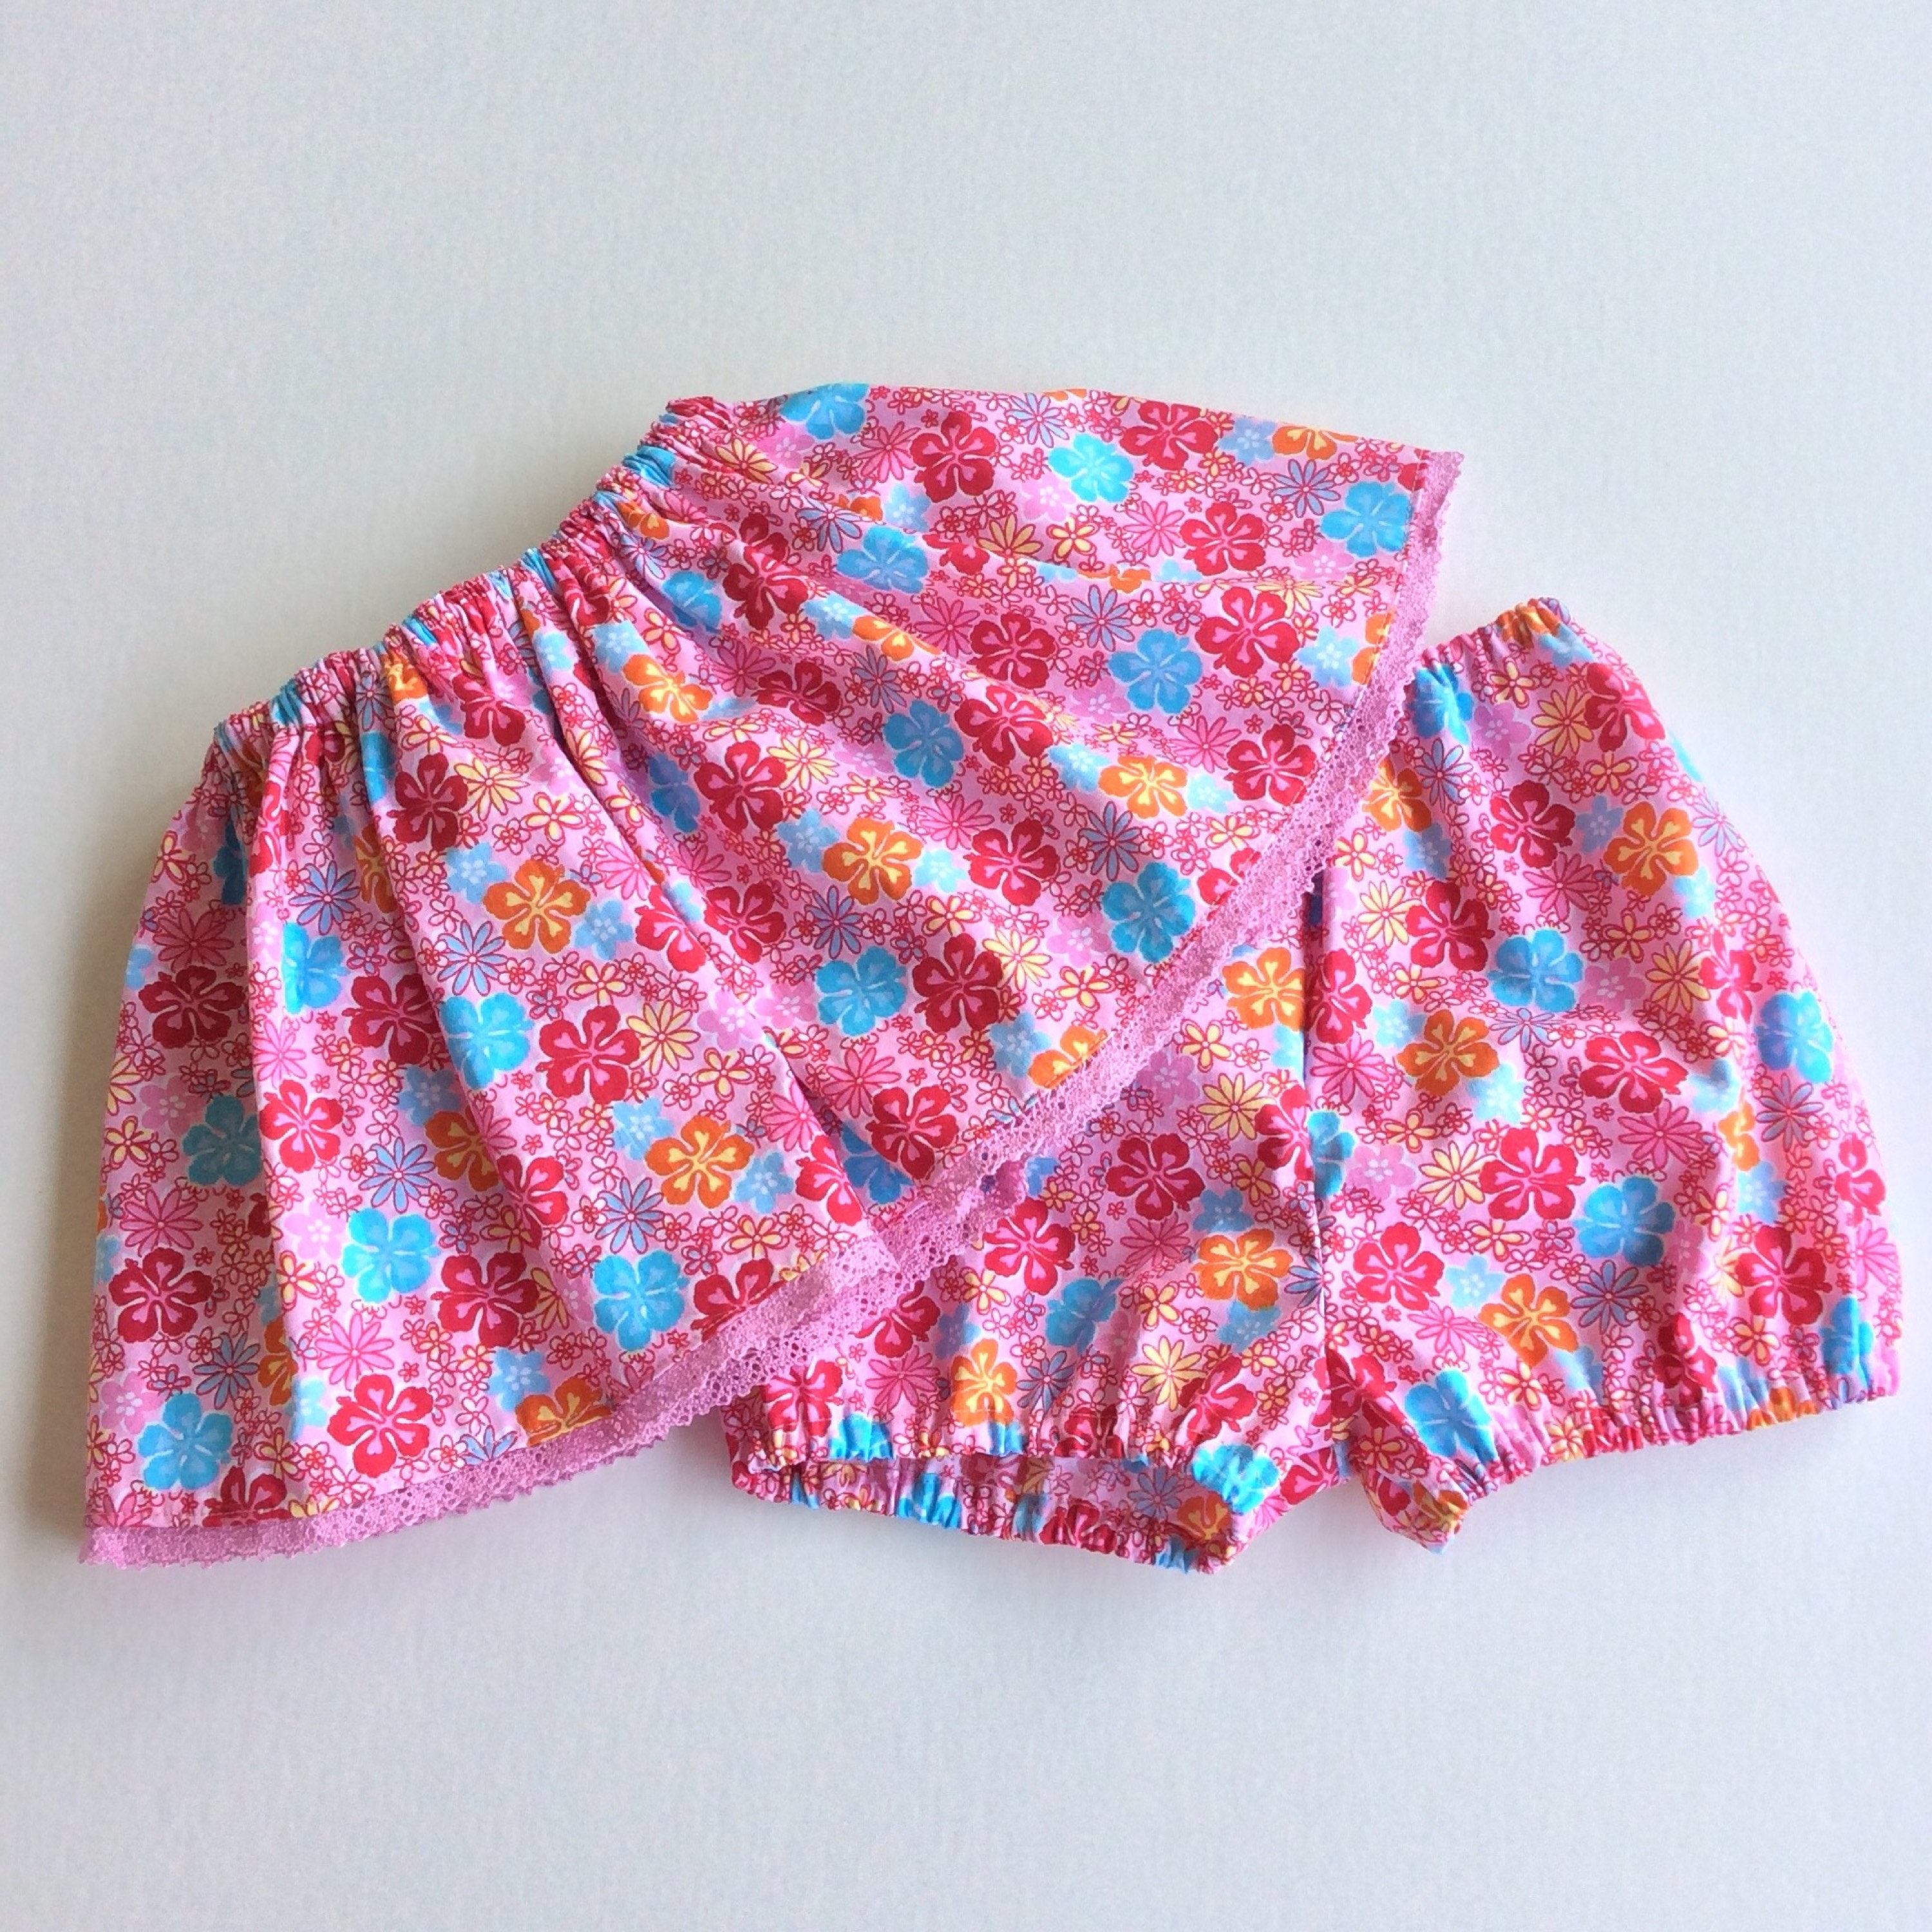 baby girl clothes 3 6 months baby skirt and bloomers set pink floral